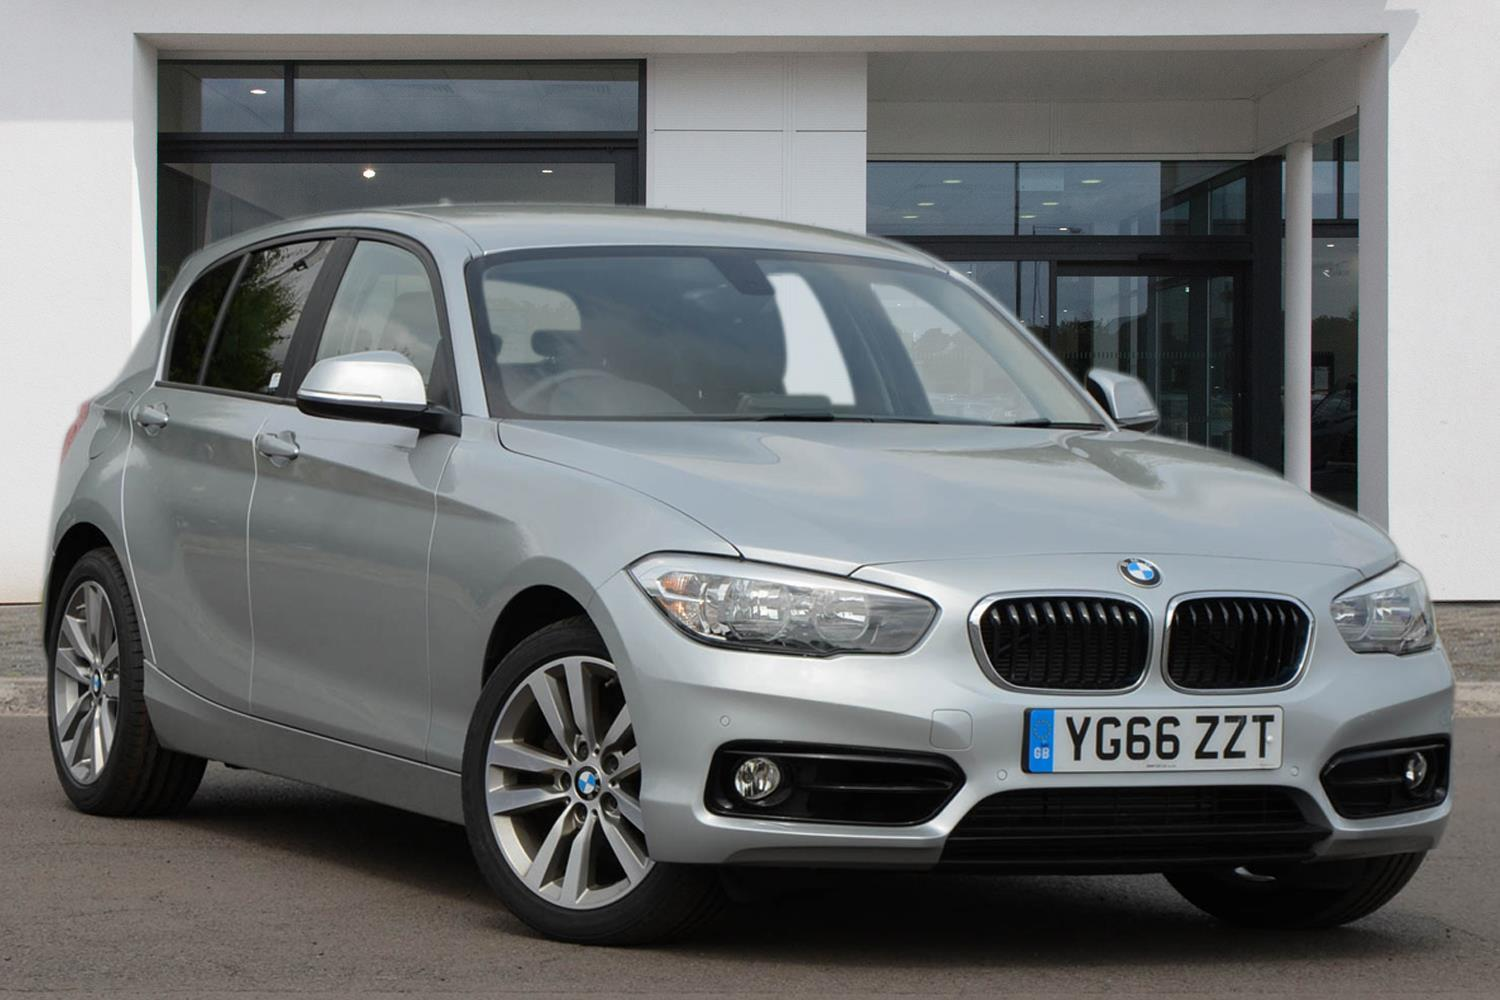 BMW 1 Series 5-door Sports Hatch YG66ZZT - Image 2